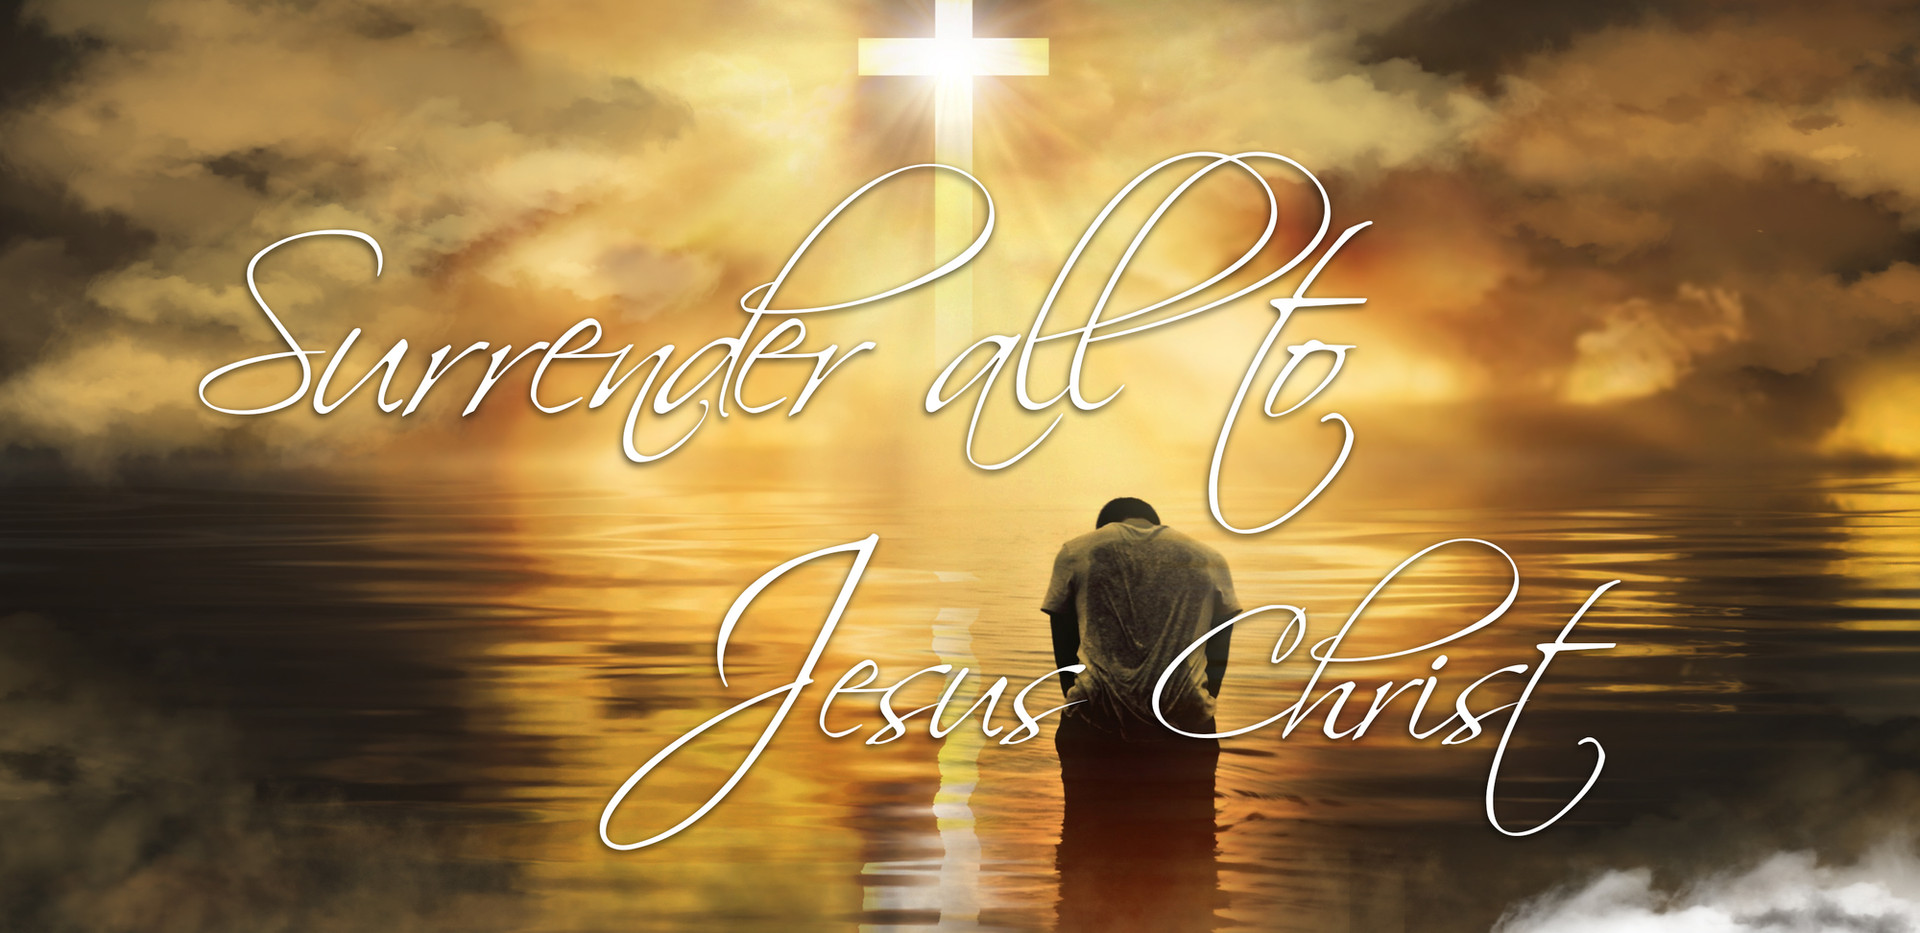 Surrender All To Jesus Christ